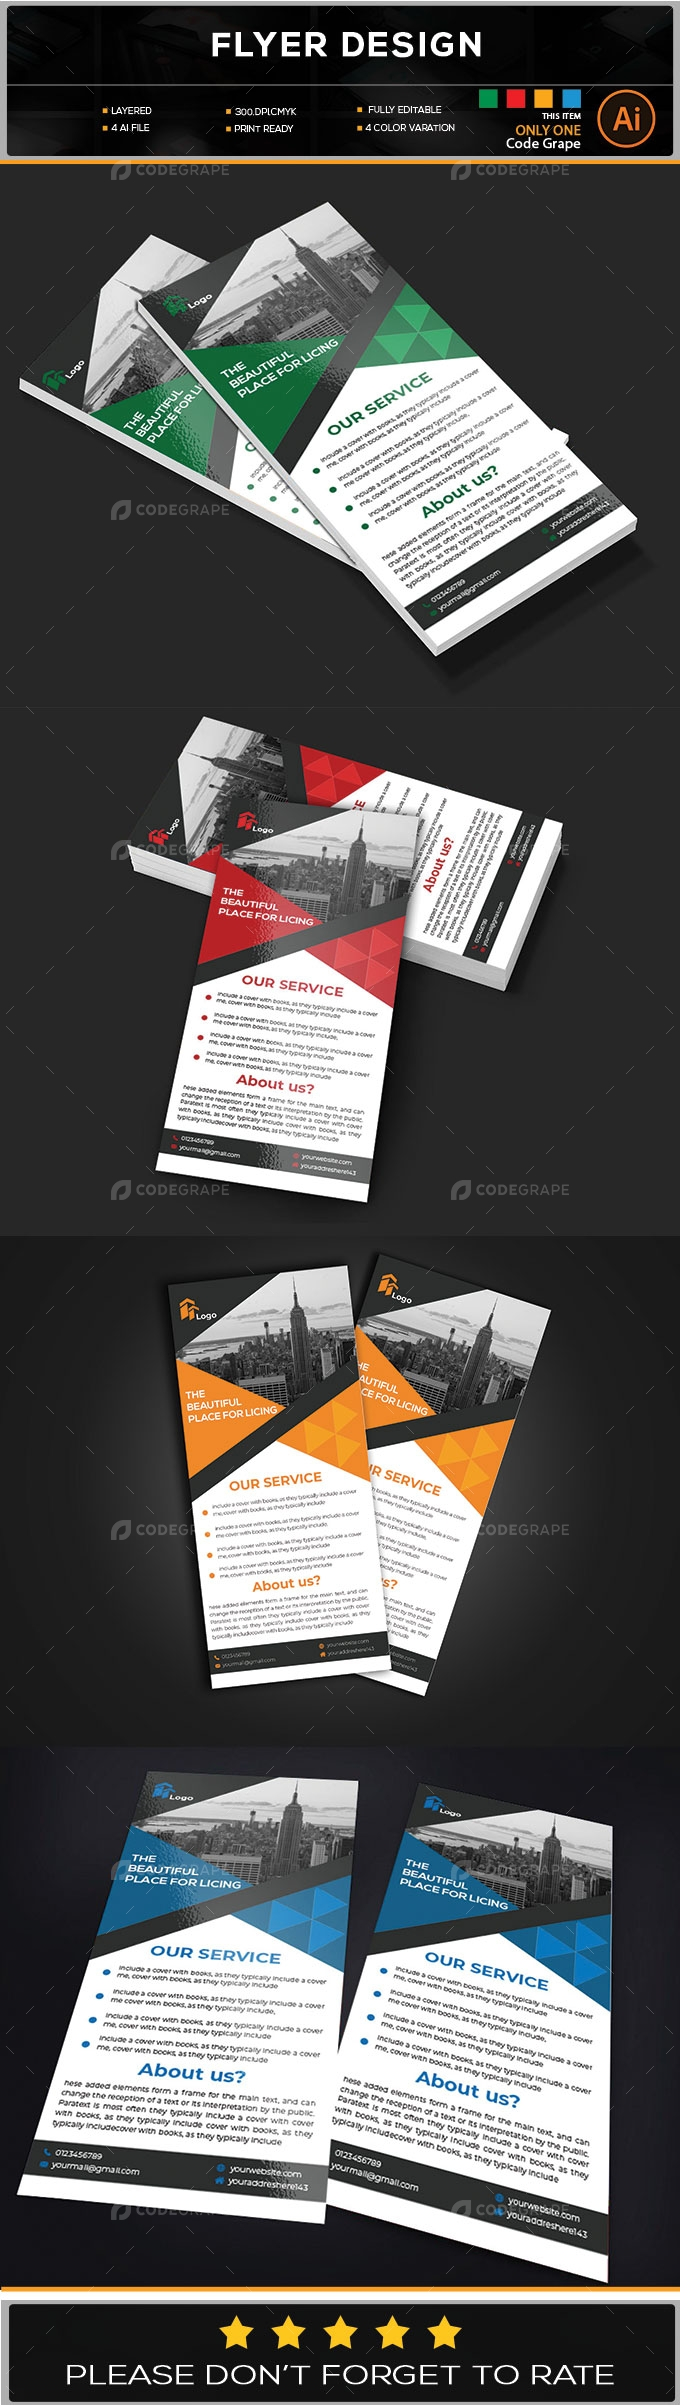 Business Rack Card Design